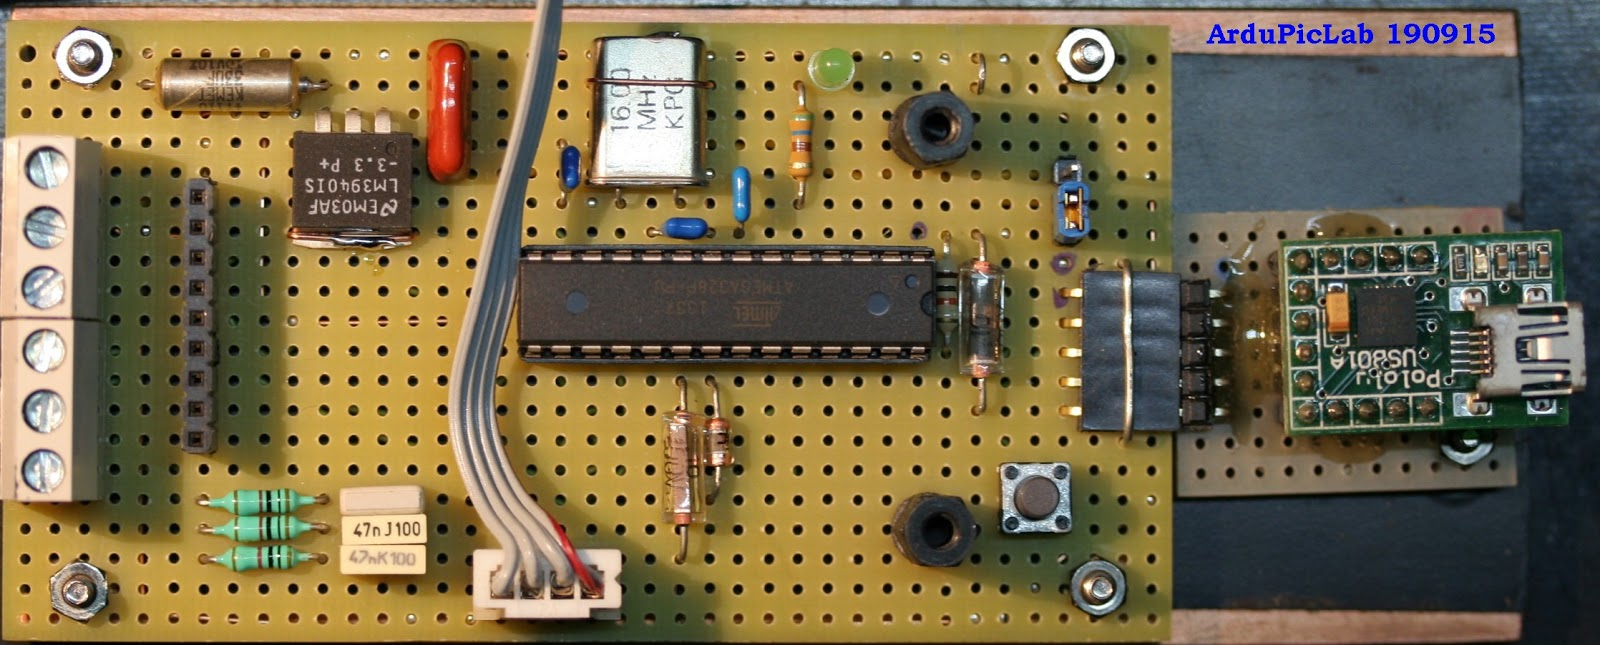 Ardupiclab How To Use The Tft Display 22 Qvga With Arduino Part 1 2 Indicate A Prototype Layout For An Electronic Circuit Load Sketch I Used Usb Serial Converter Module Connected Pc Following Figure Shows And Component